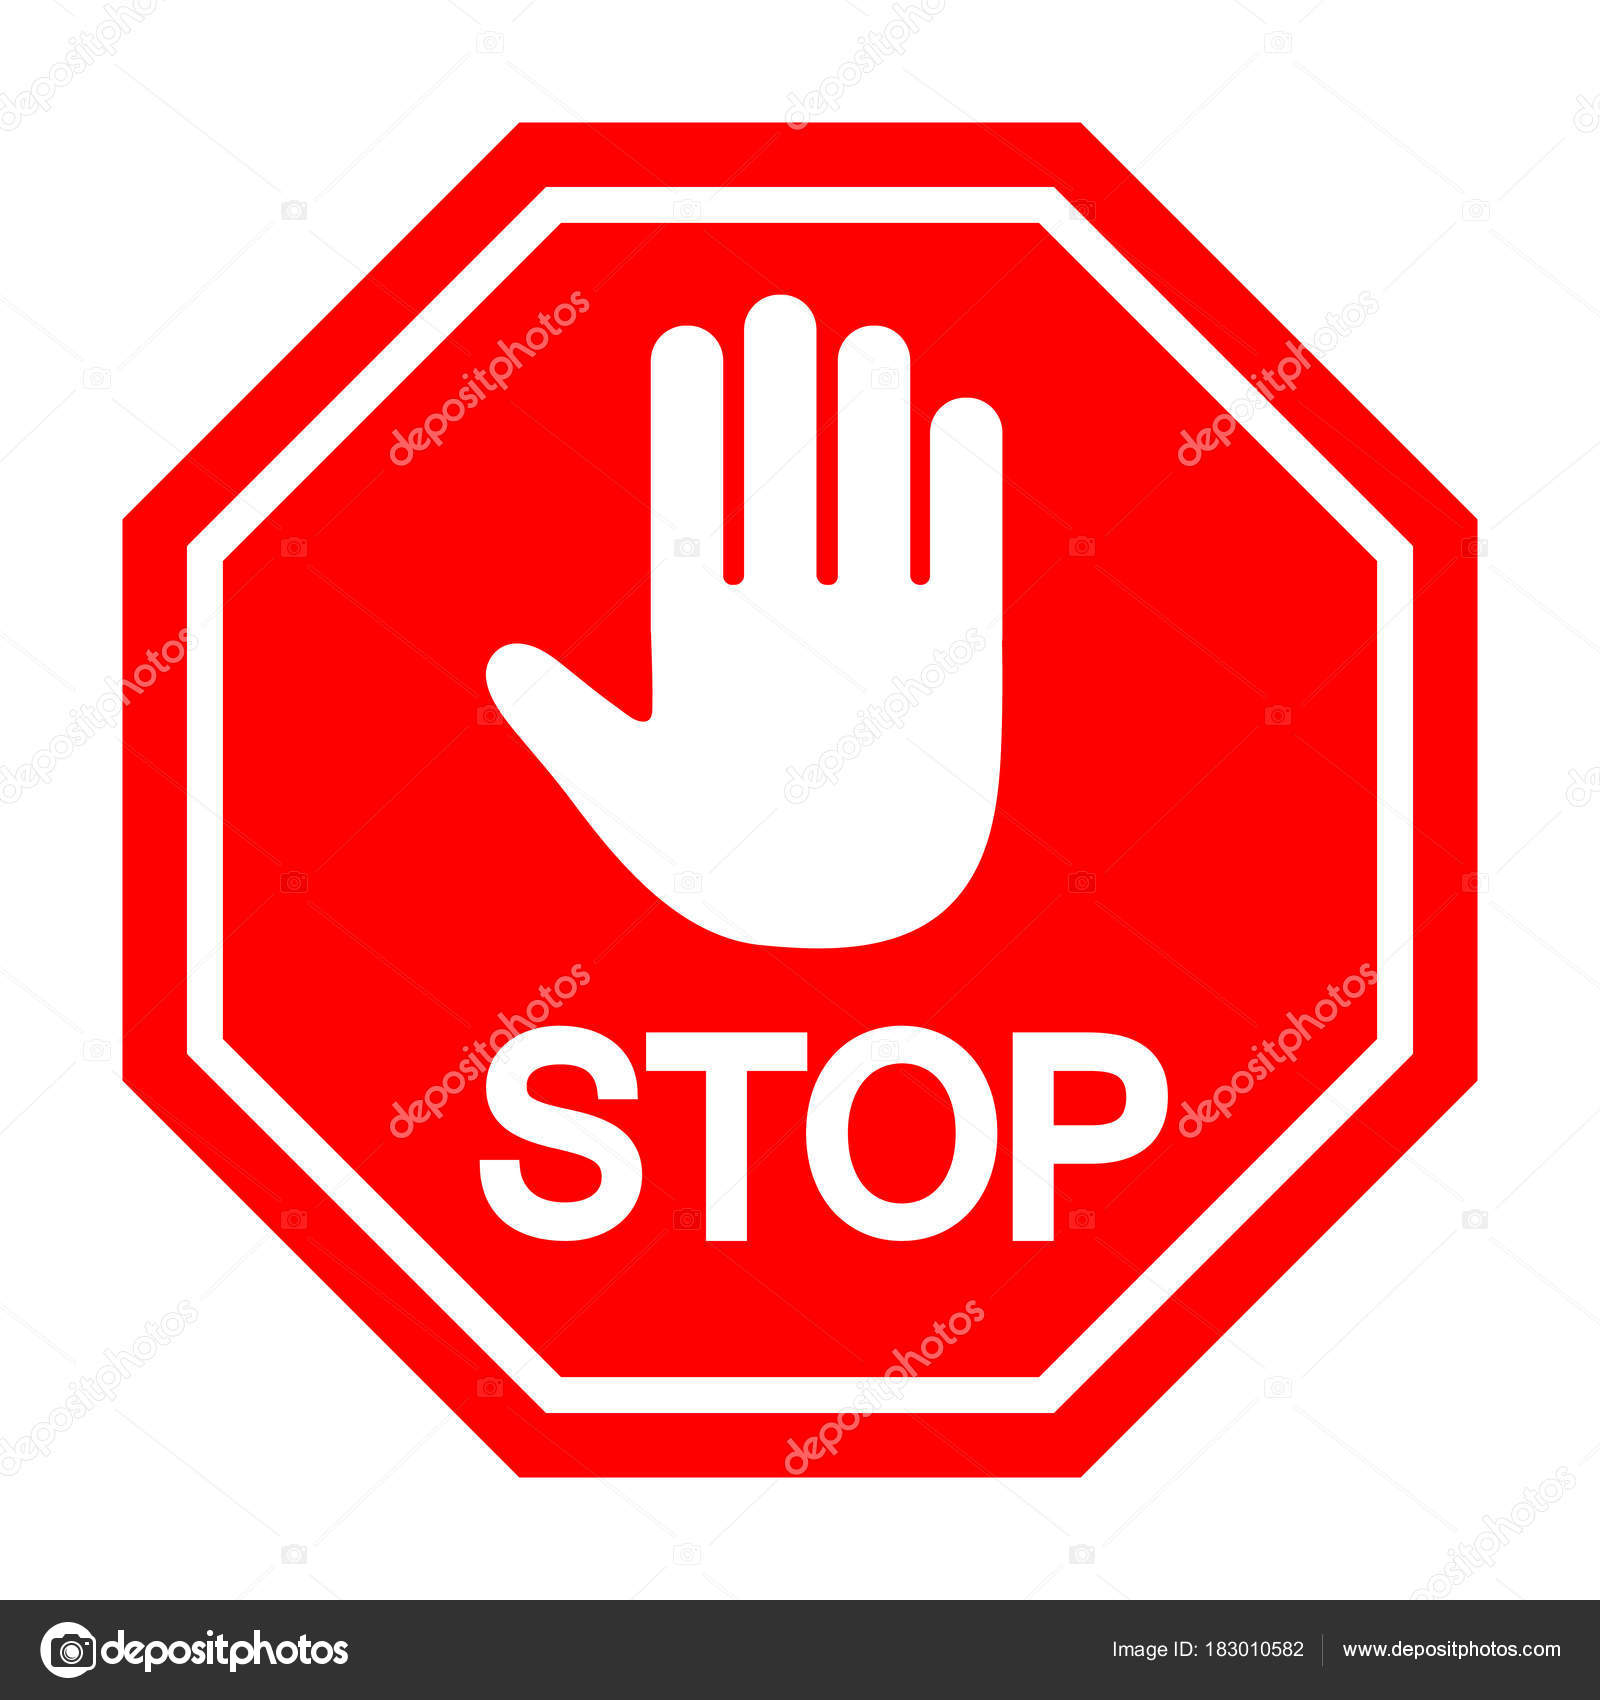 stop sign prohibited stock vector elena3567 183010582